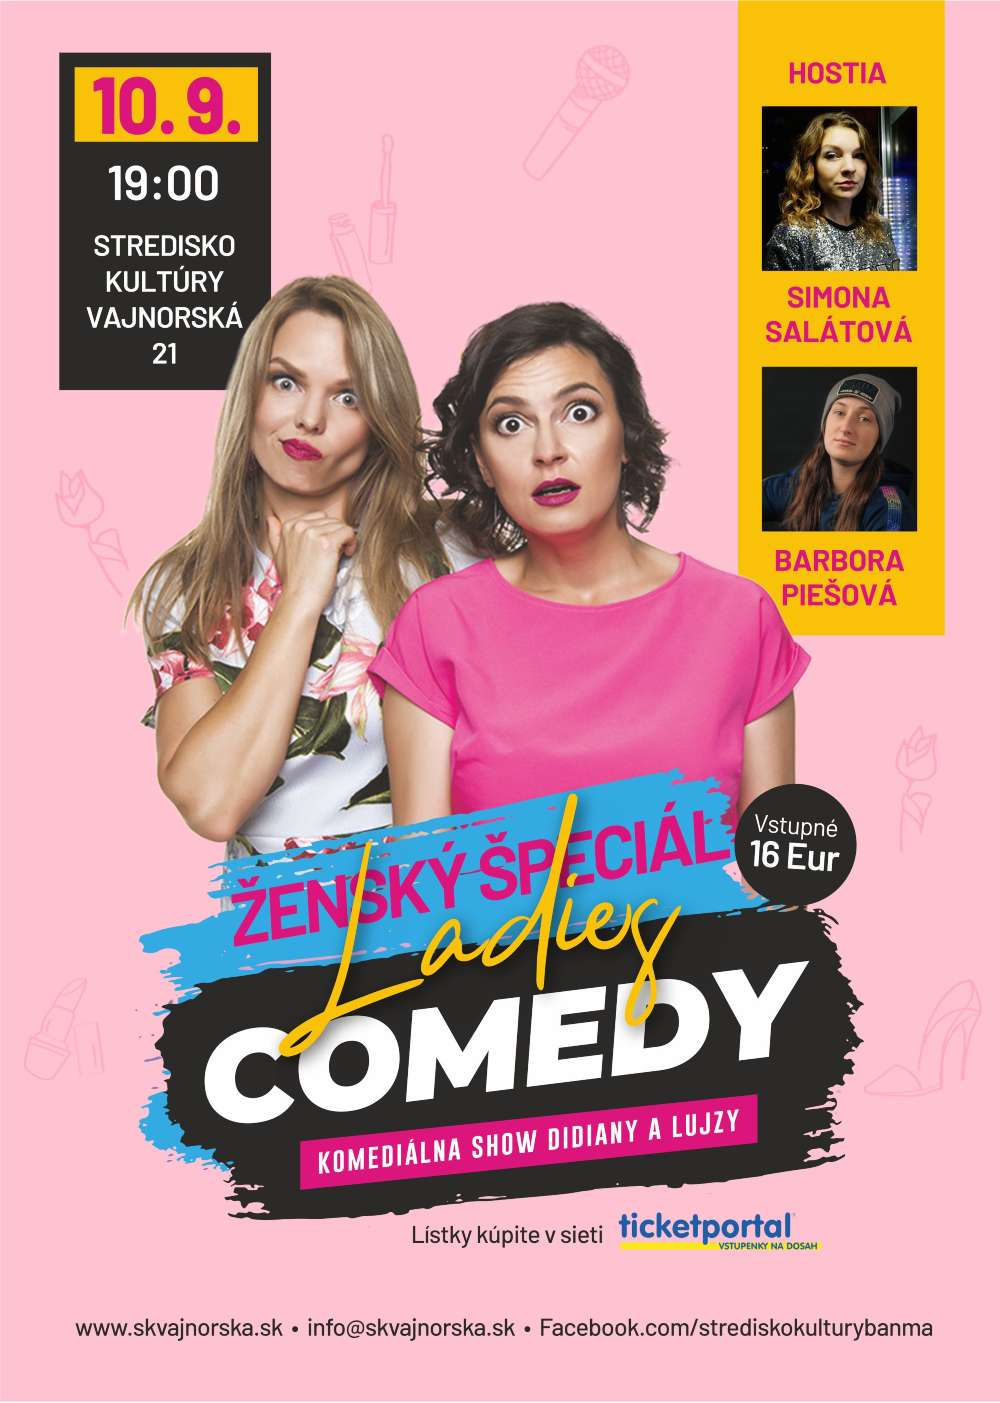 picture LADIES COMEDY S DIDIANOU A LUJZOU